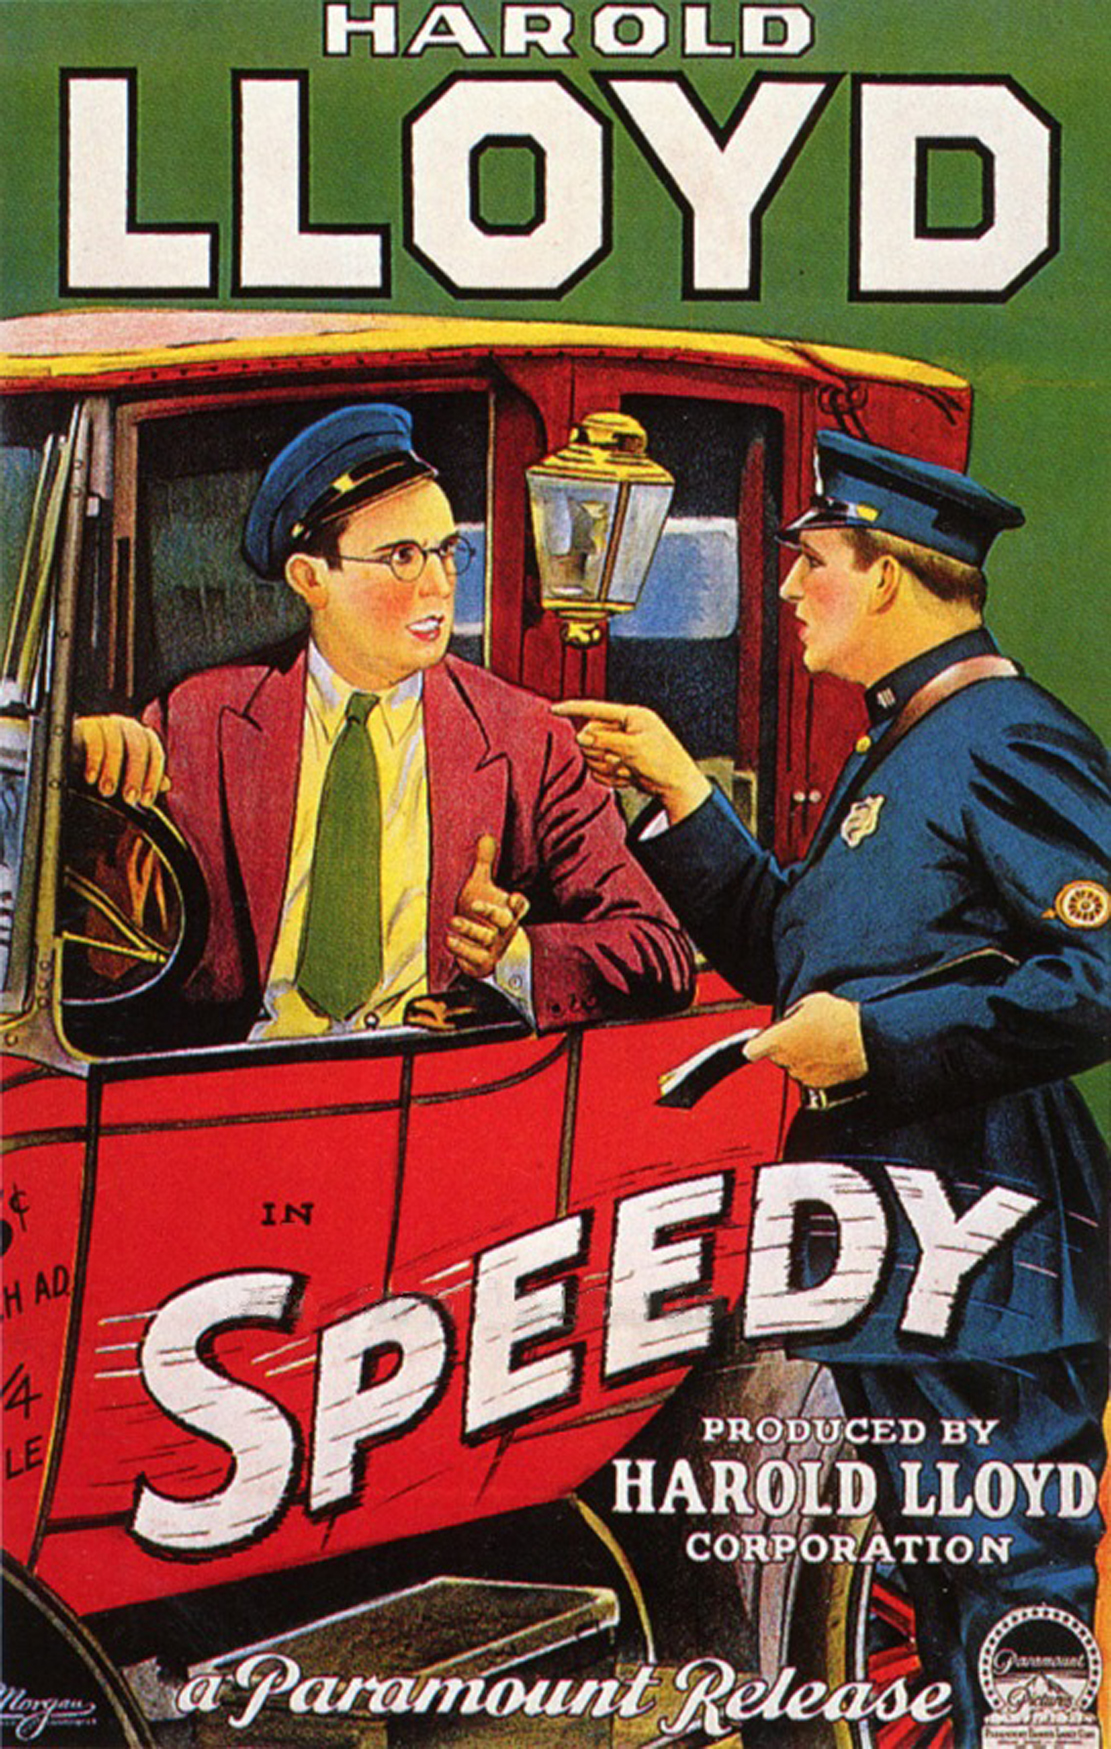 "Harold Lloyd as depicted in a poster for his film ""Speedy"" (1928)."